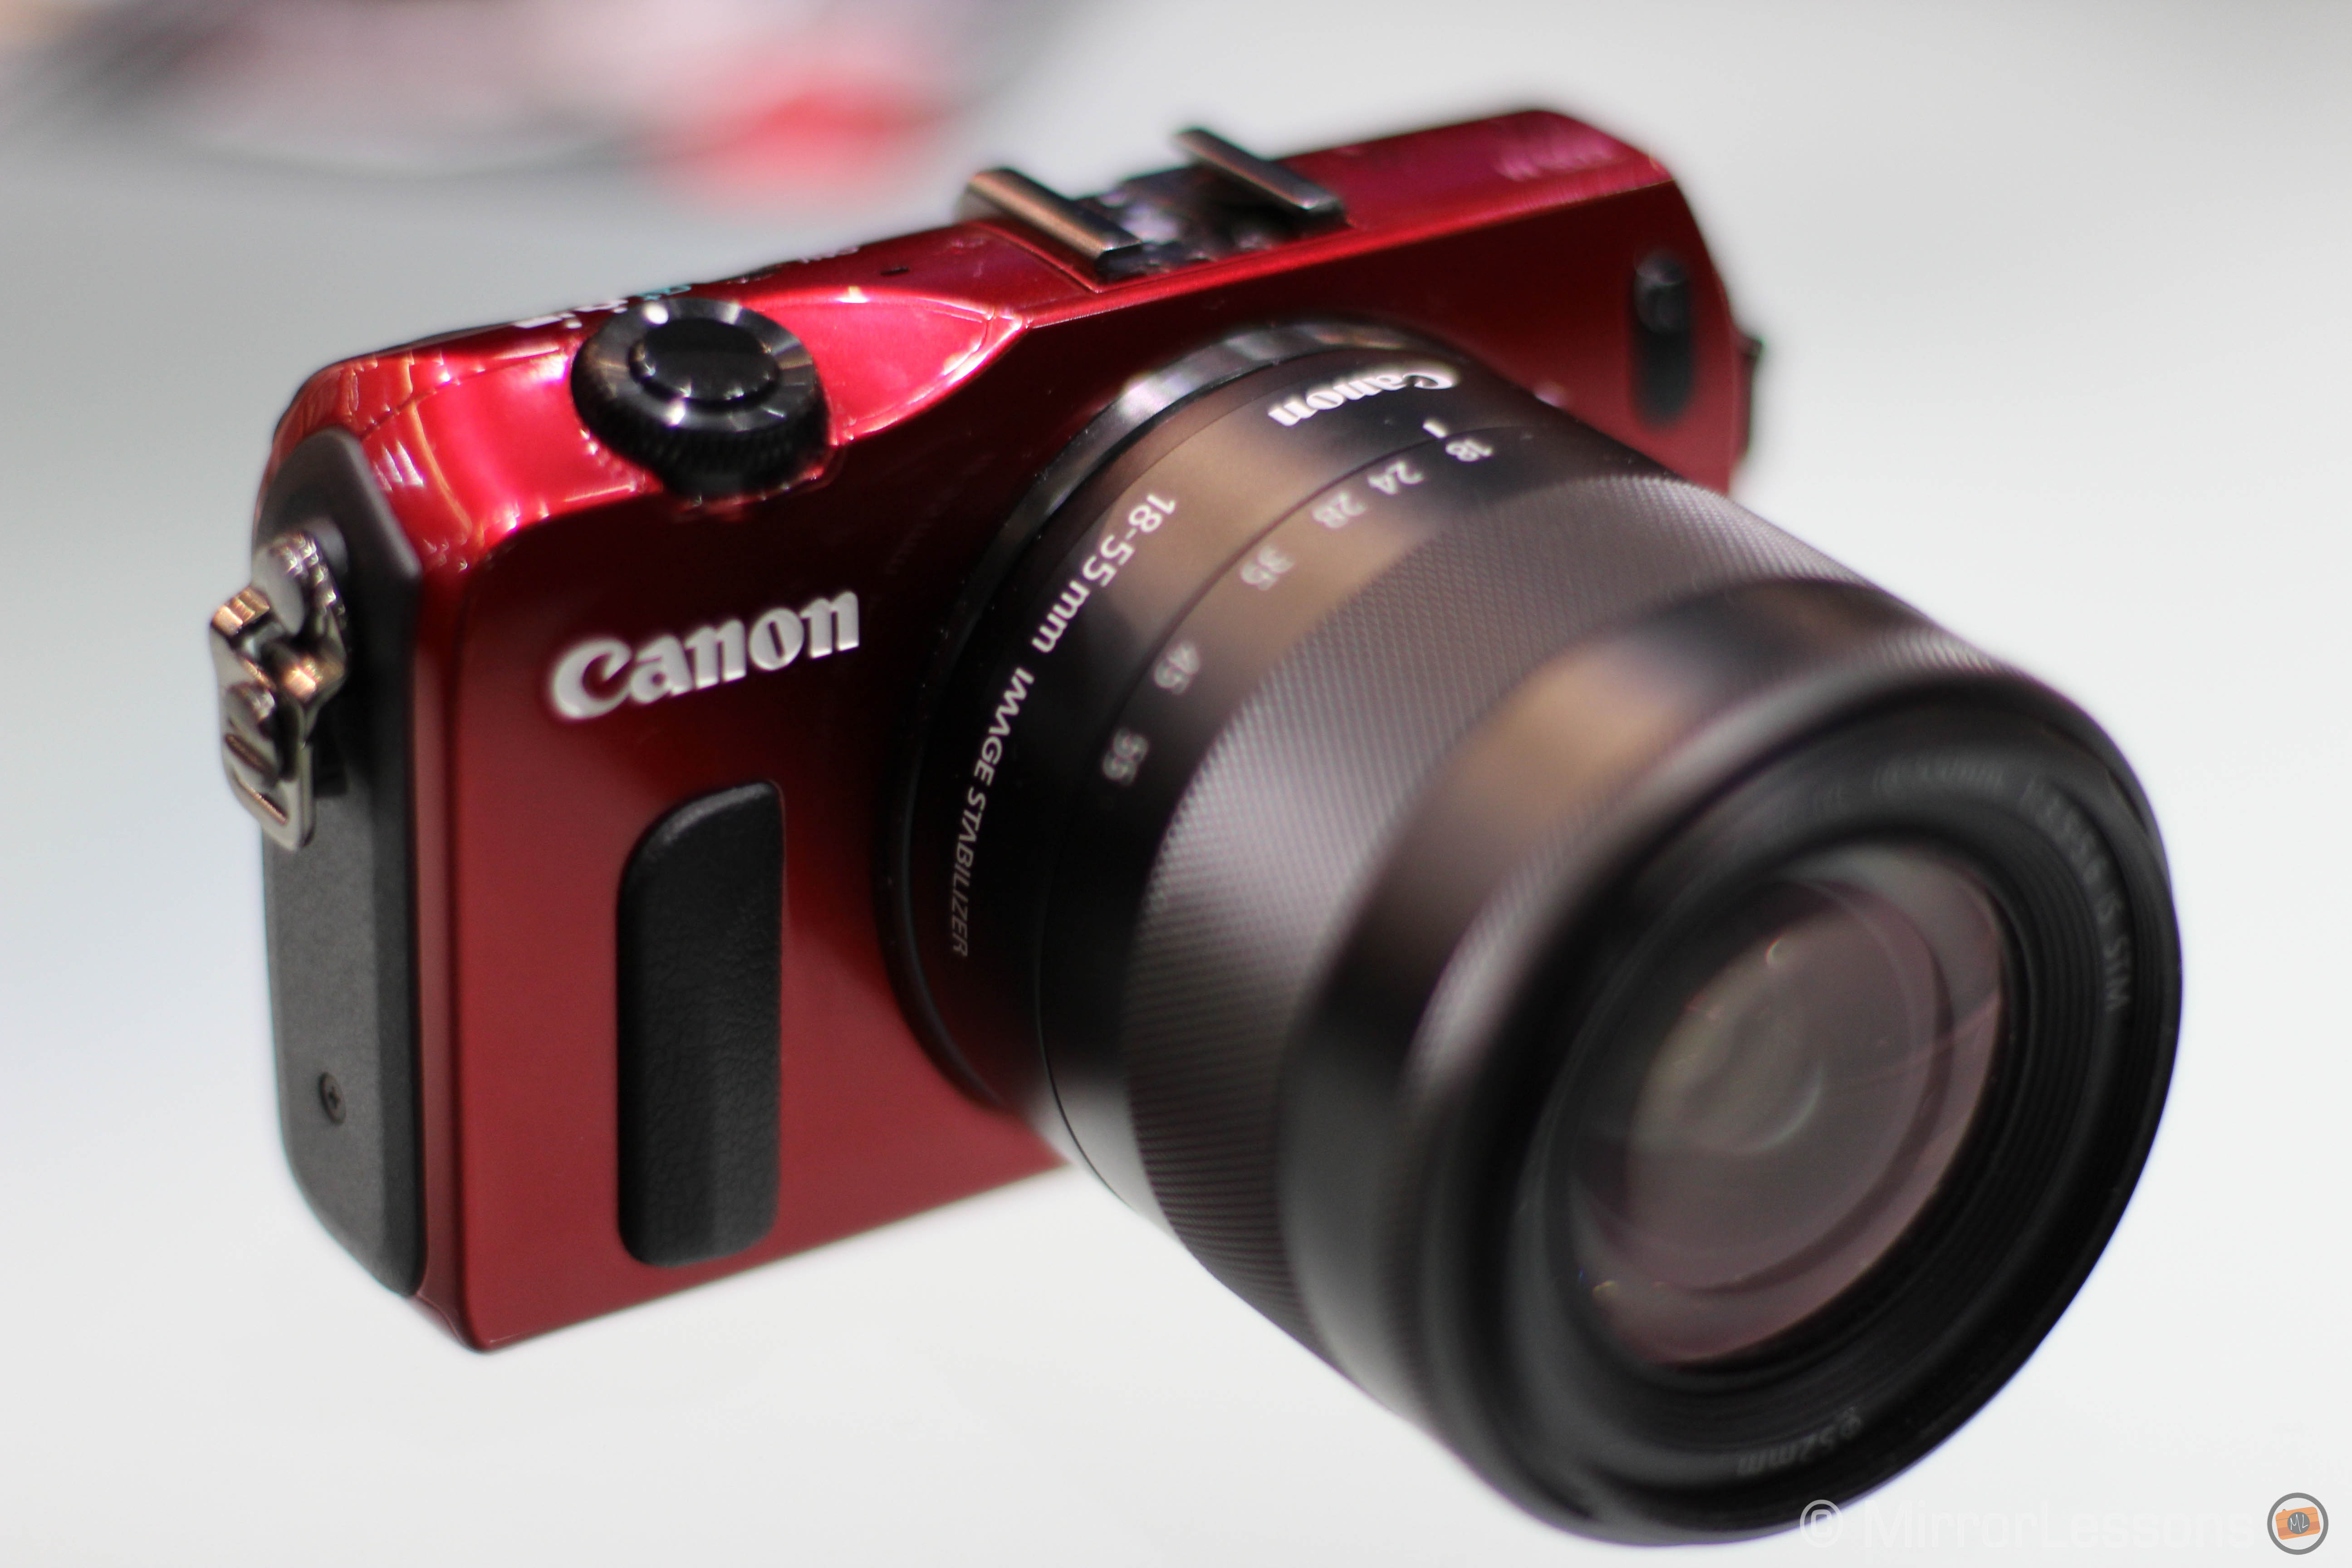 Photoshow 2013 Hands On With The New Canon Eos 100d Rebel Sl1 Is Dslr Camera 1 100 F 14 Iso 400